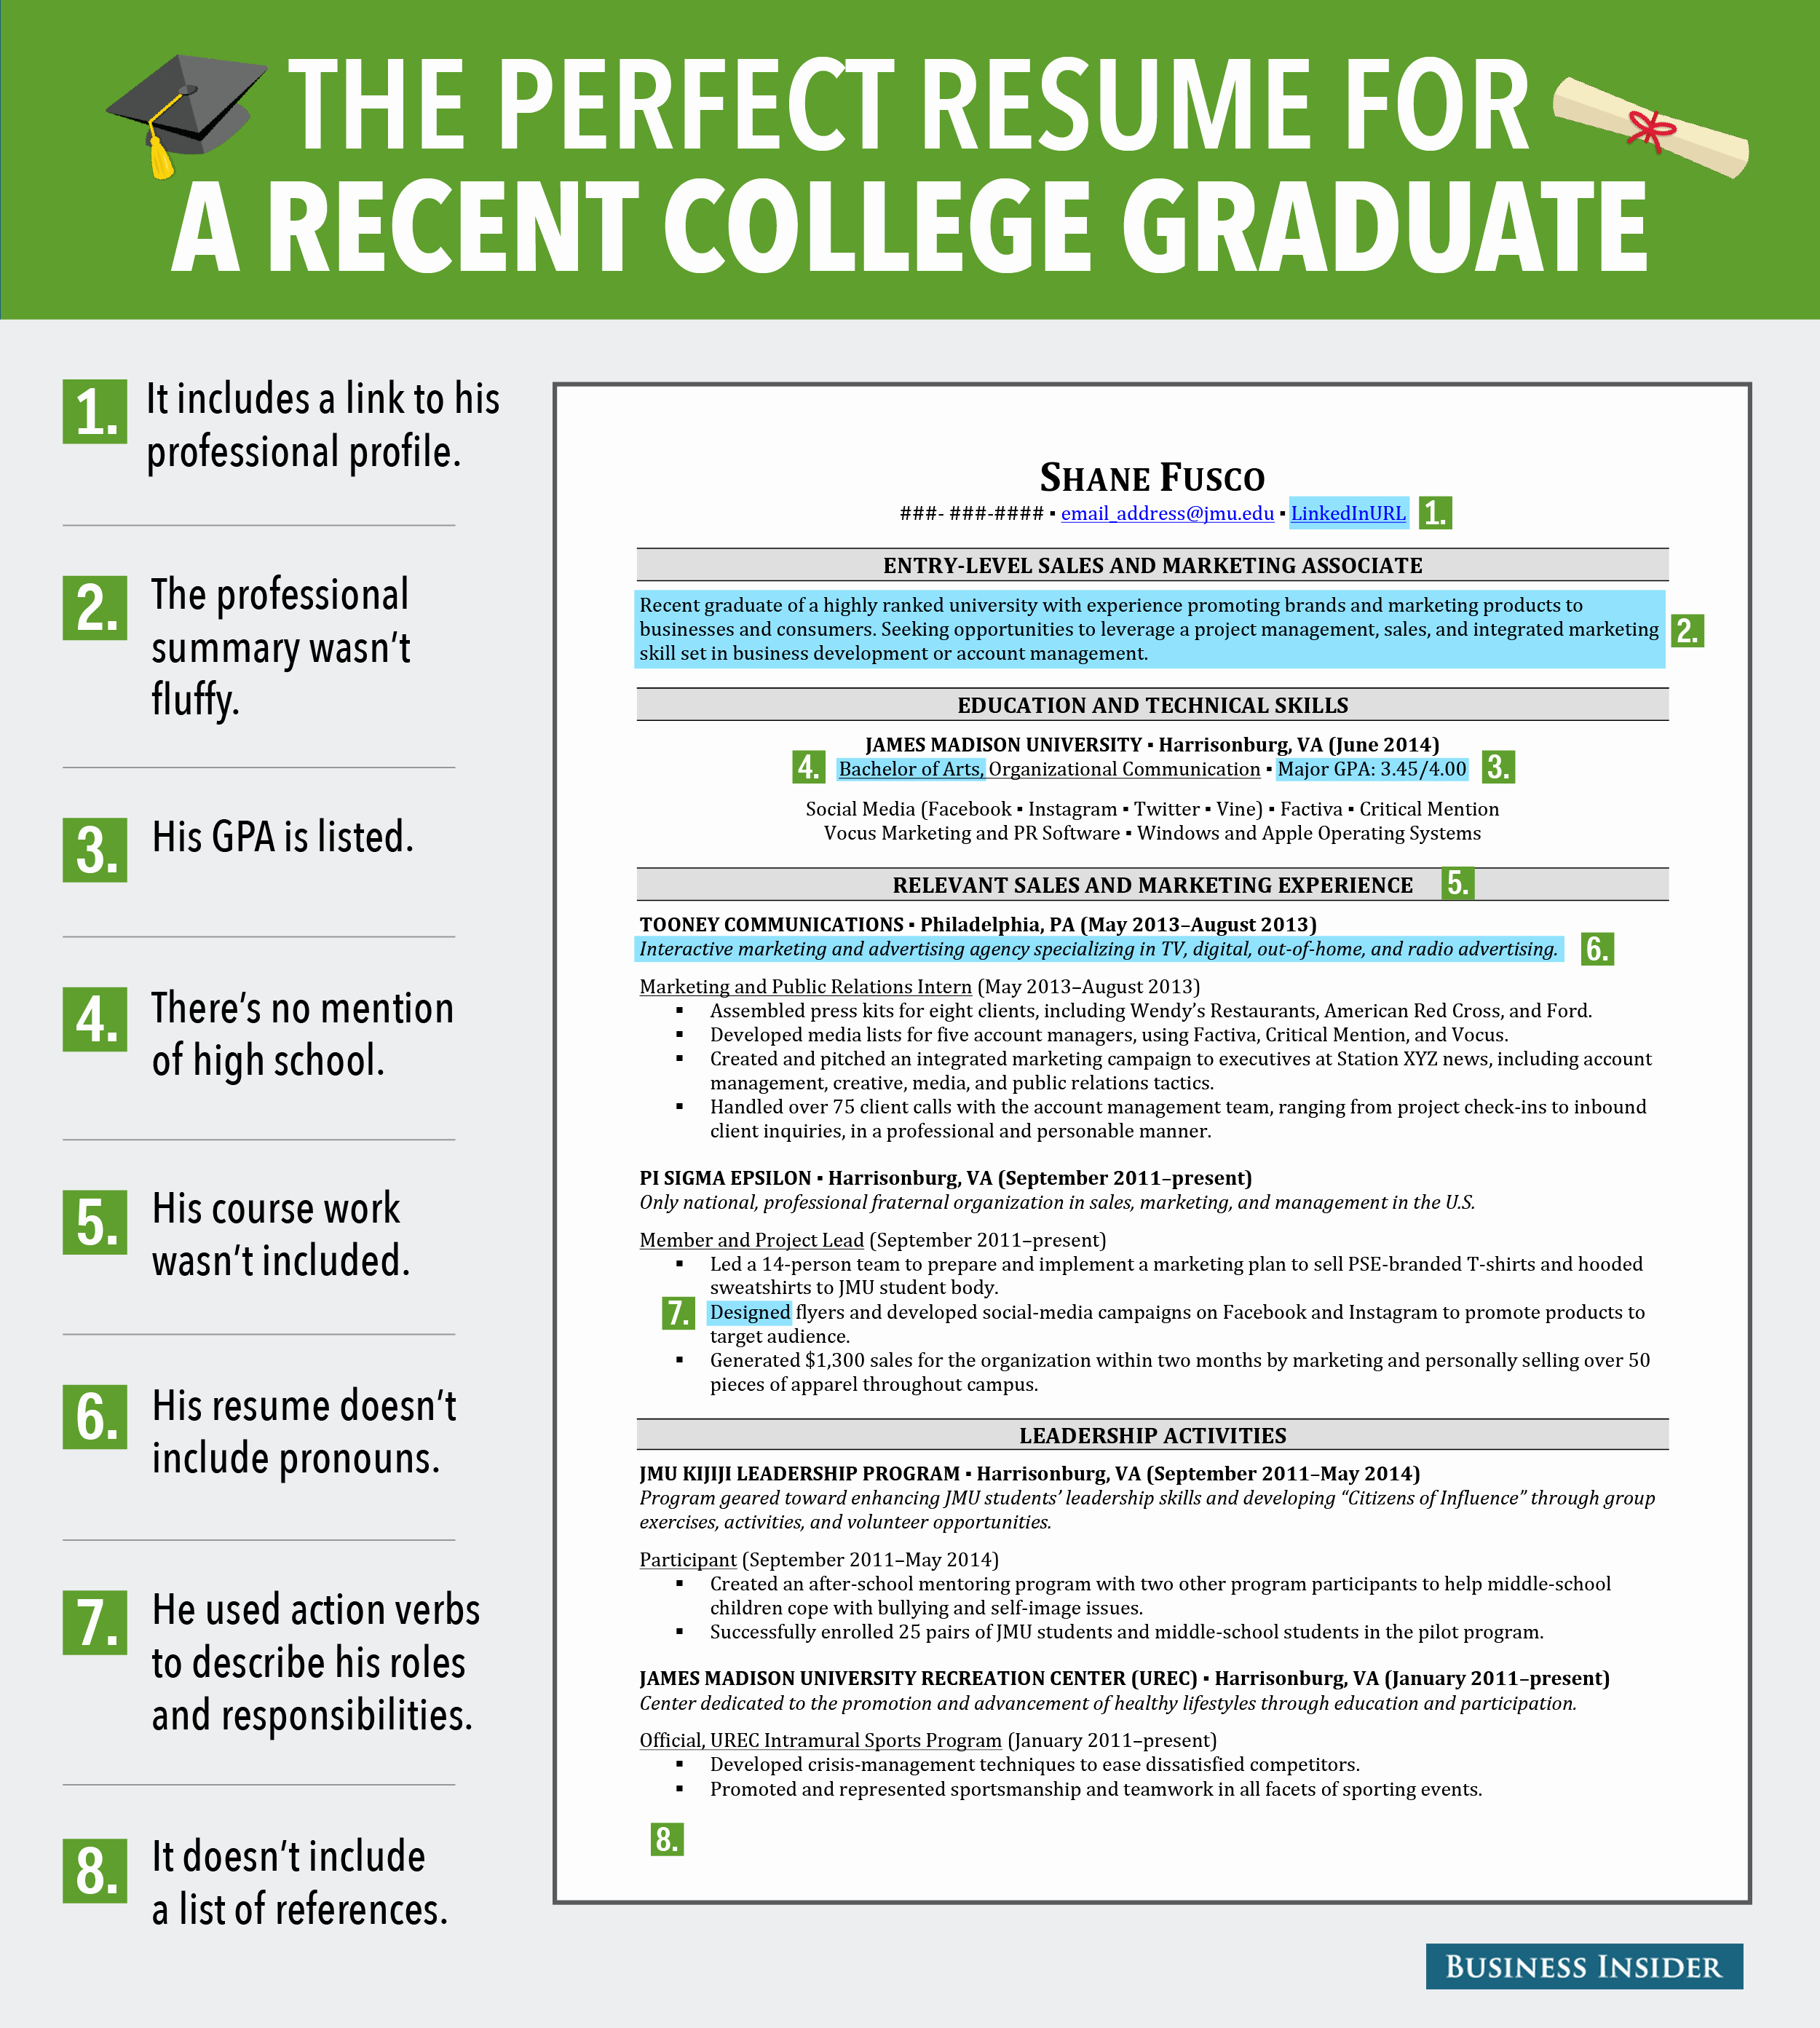 Resume for Recent College Grad Beautiful Excellent Resume for Recent Grad Business Insider